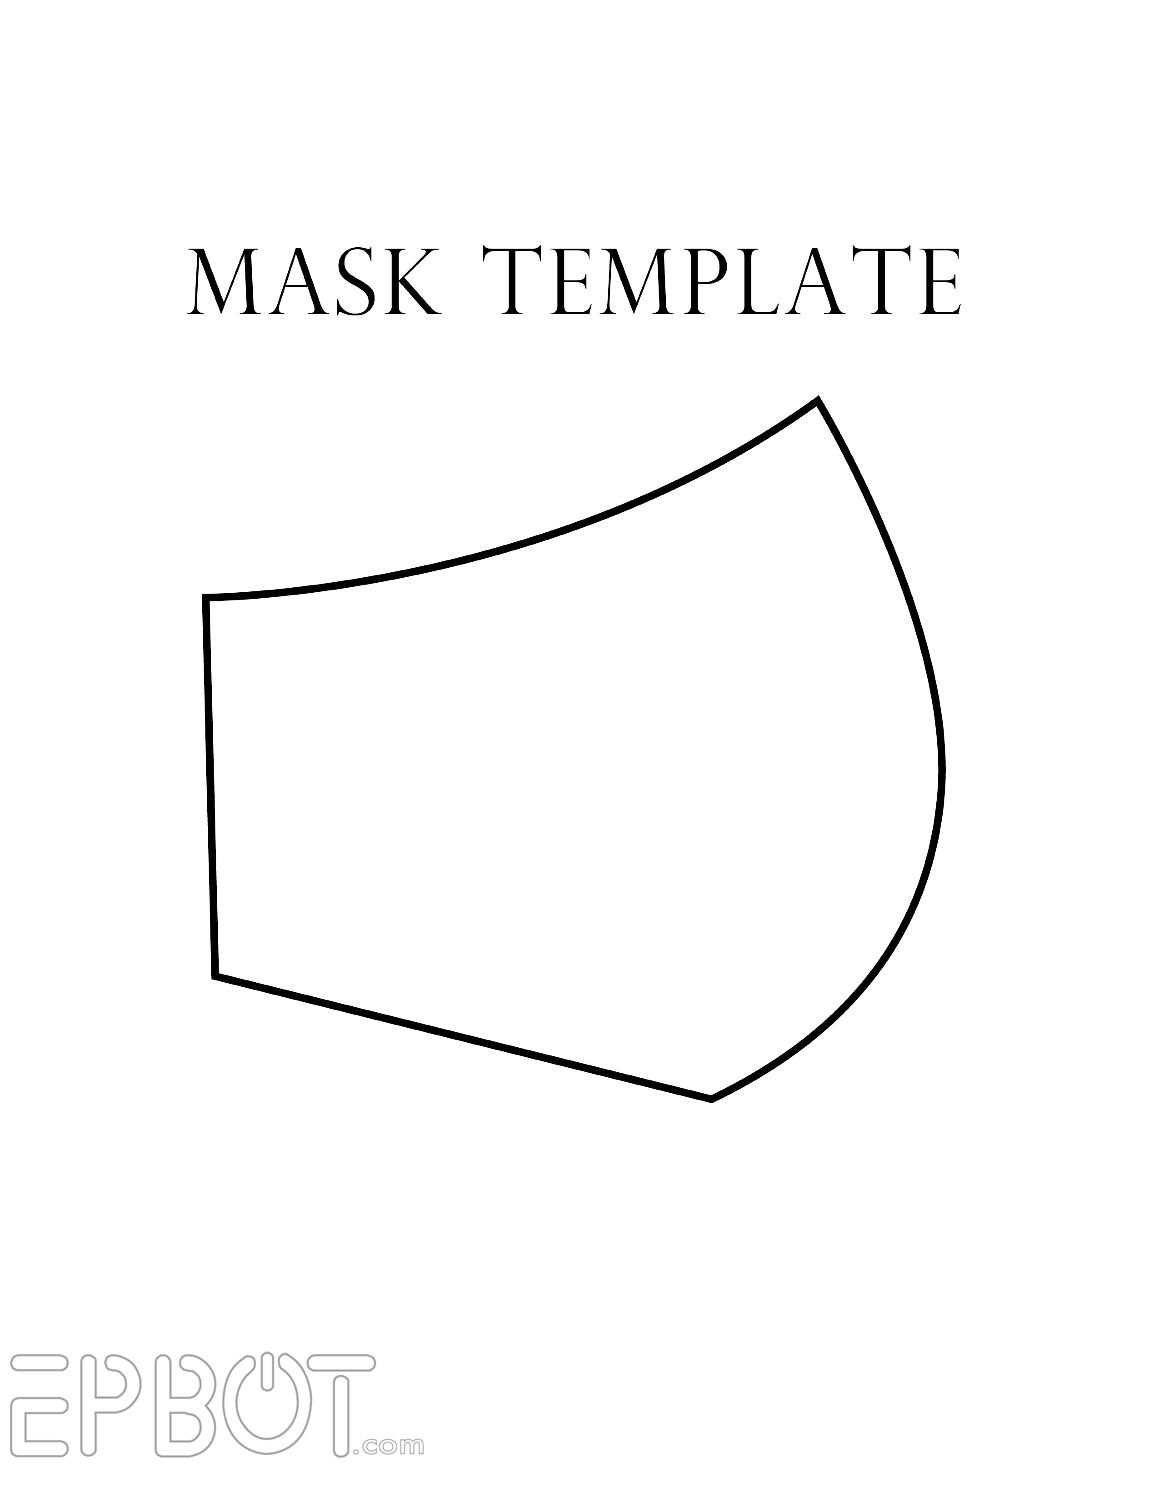 EPBOT My Faux Respirator Mask For Cons Free Template